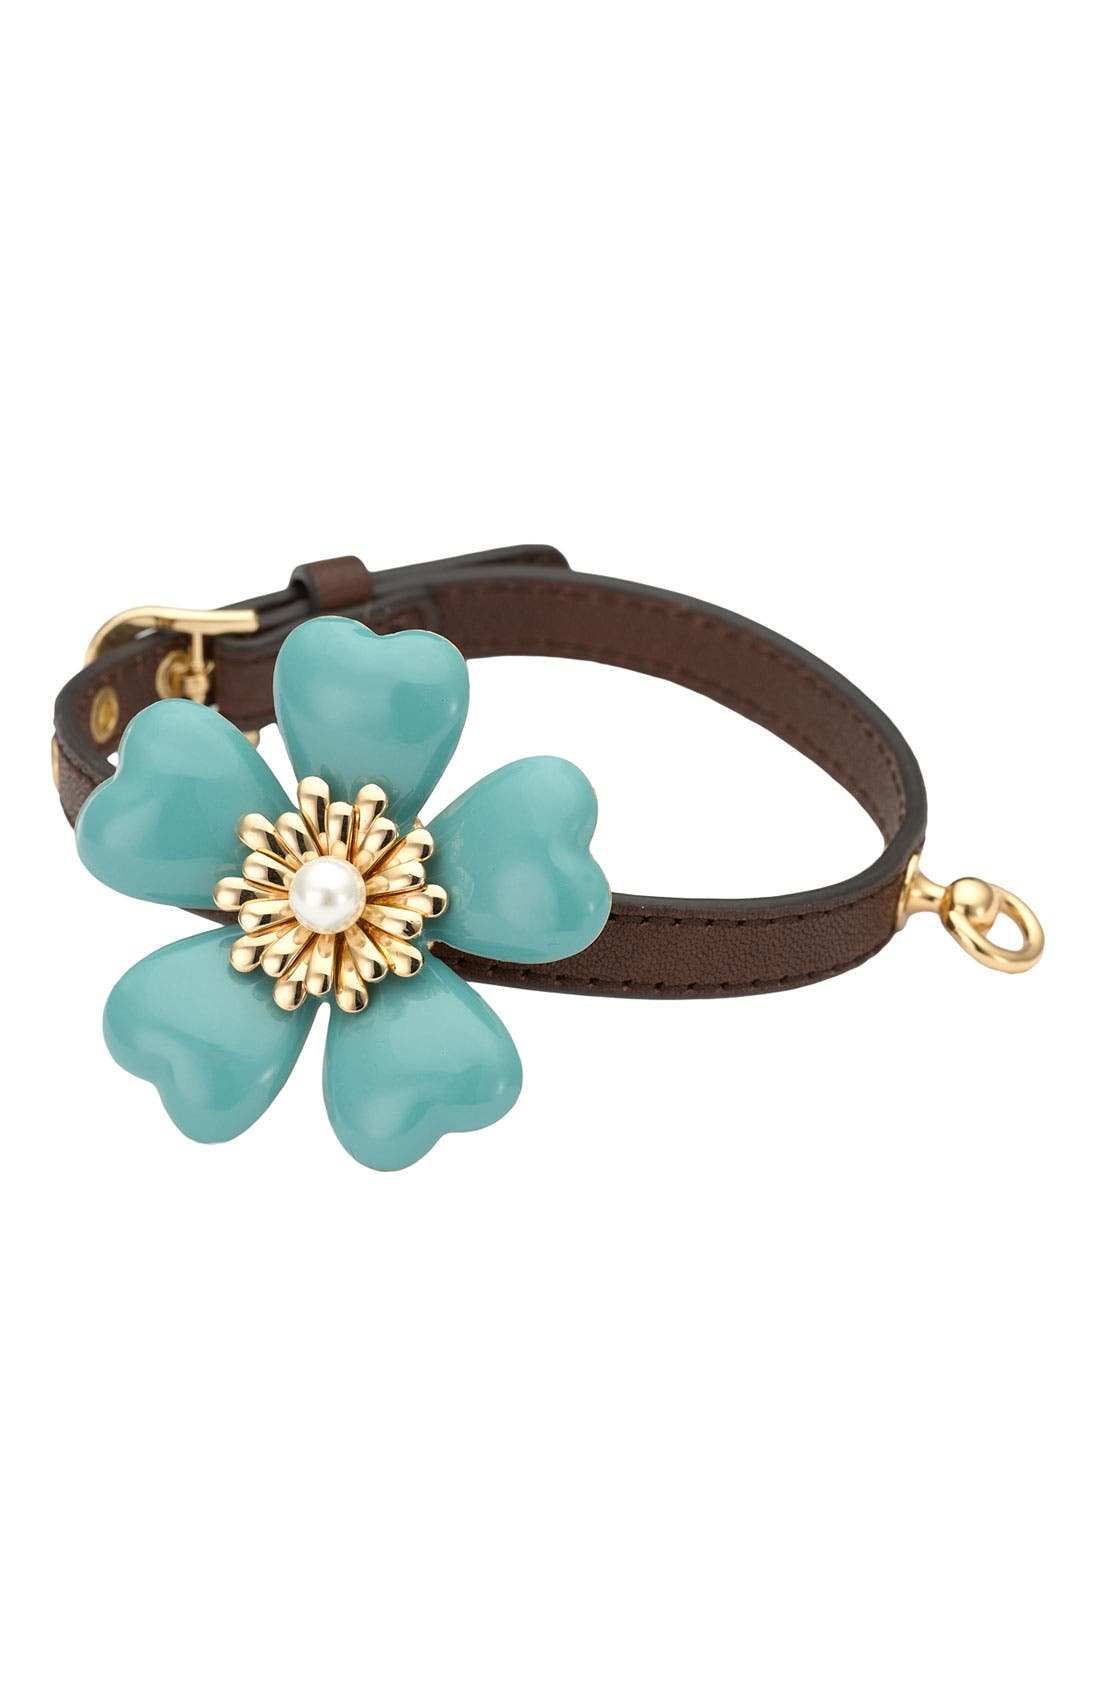 JUICY COUTURE,                             Flower Dog Collar,                             Main thumbnail 1, color,                             376